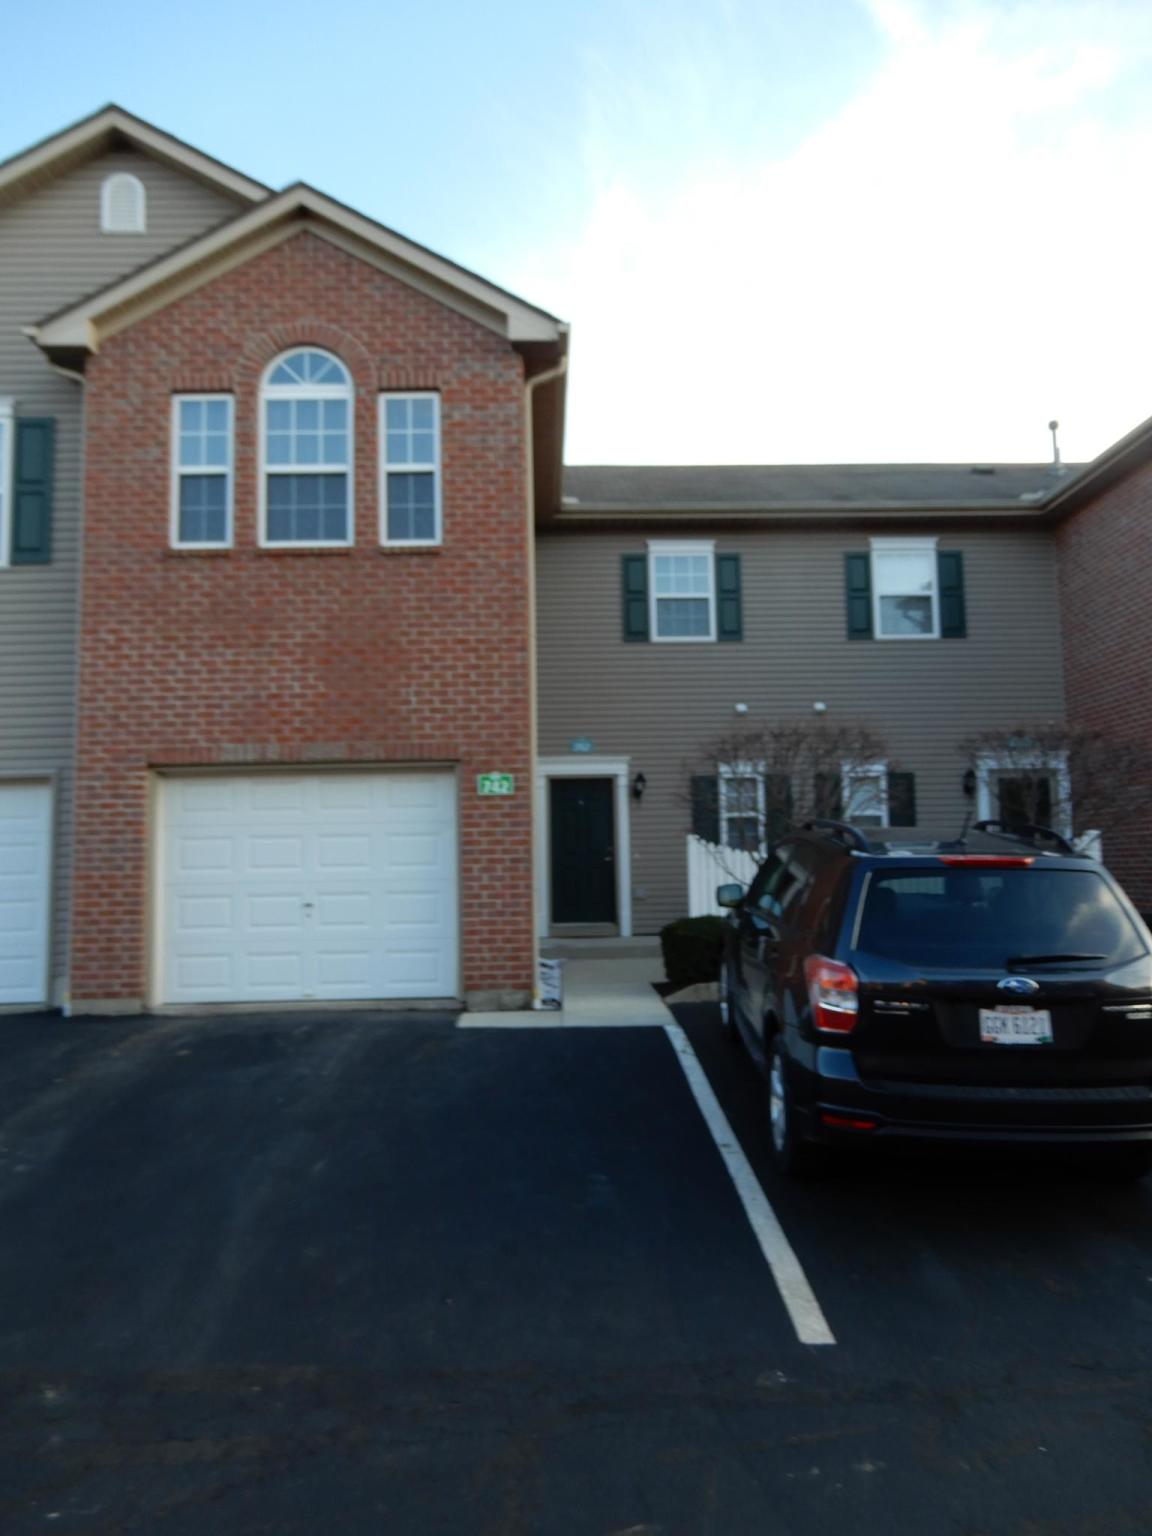 742 Spring Valley Dr, Lewis Center, OH 43035 For Rent   Trulia